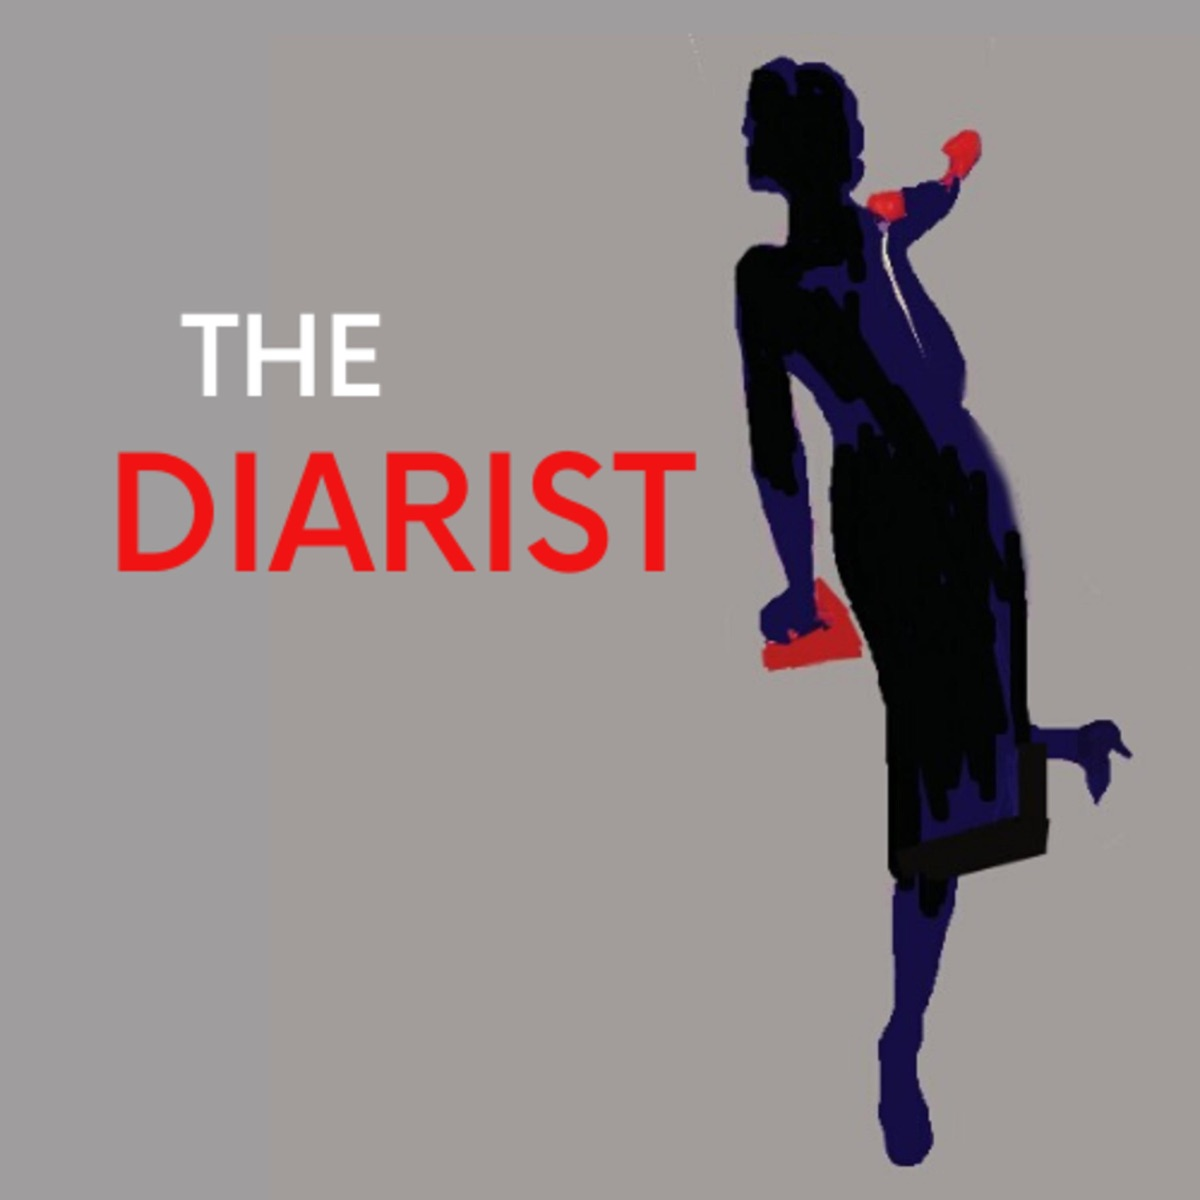 The Diarist ~ an audio drama